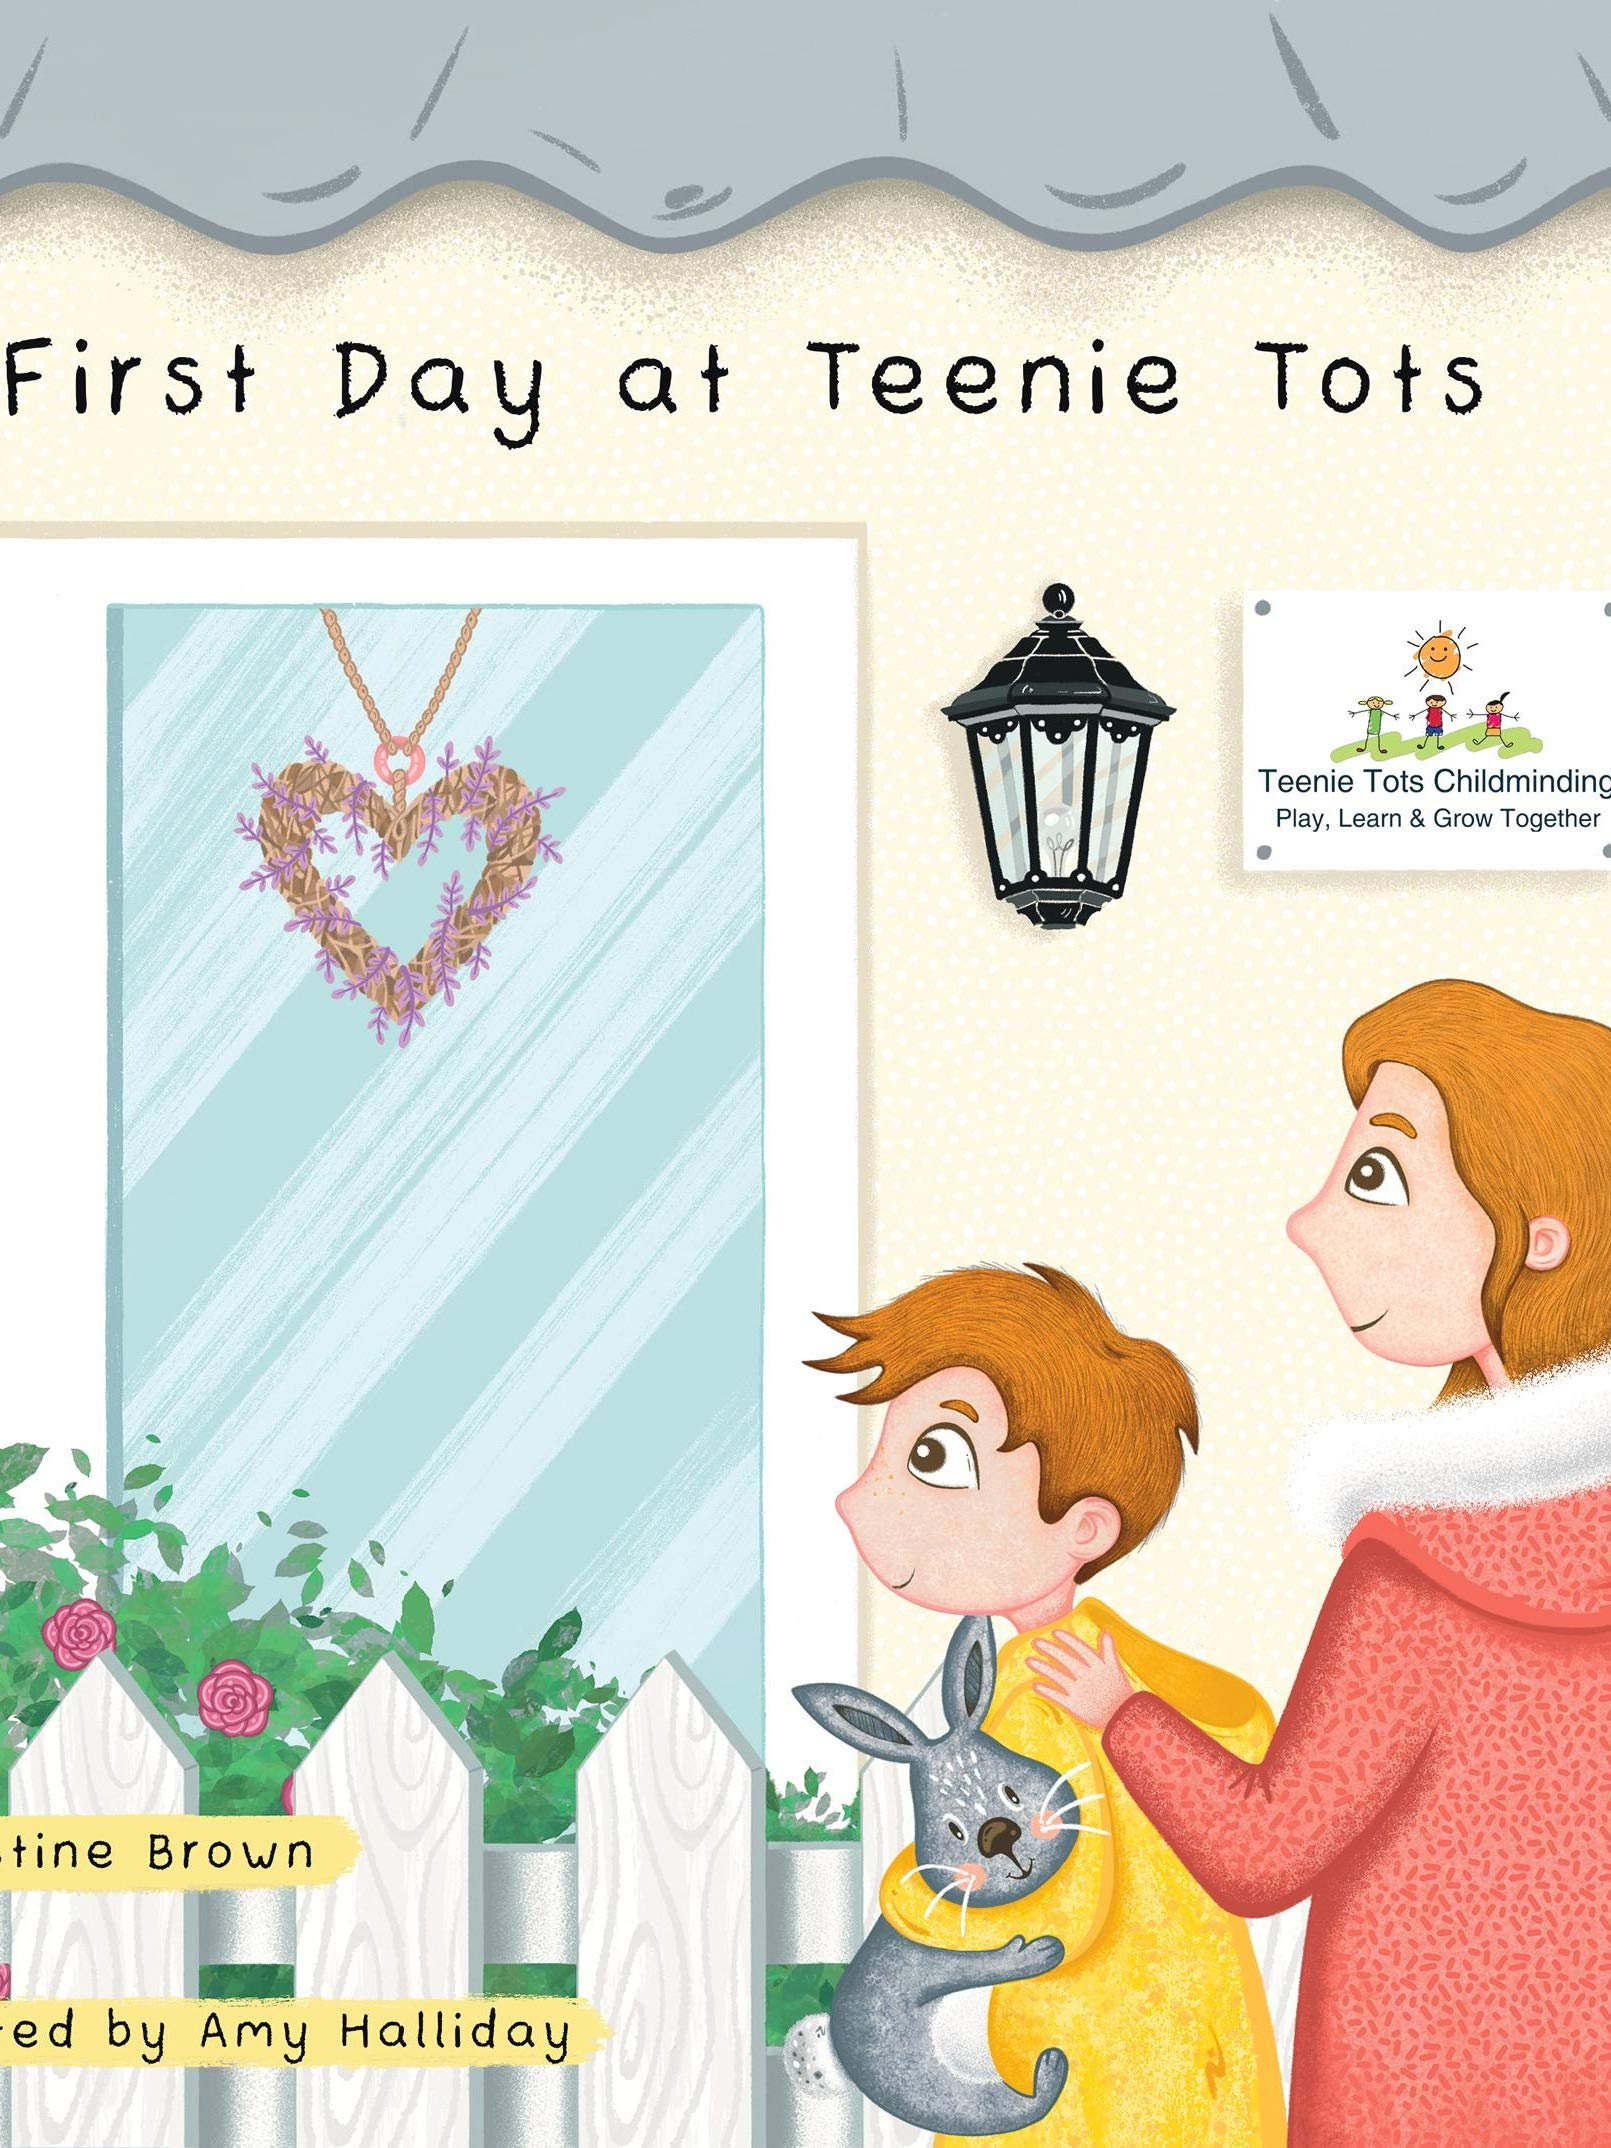 Clip: My First Day at Teenie Tots